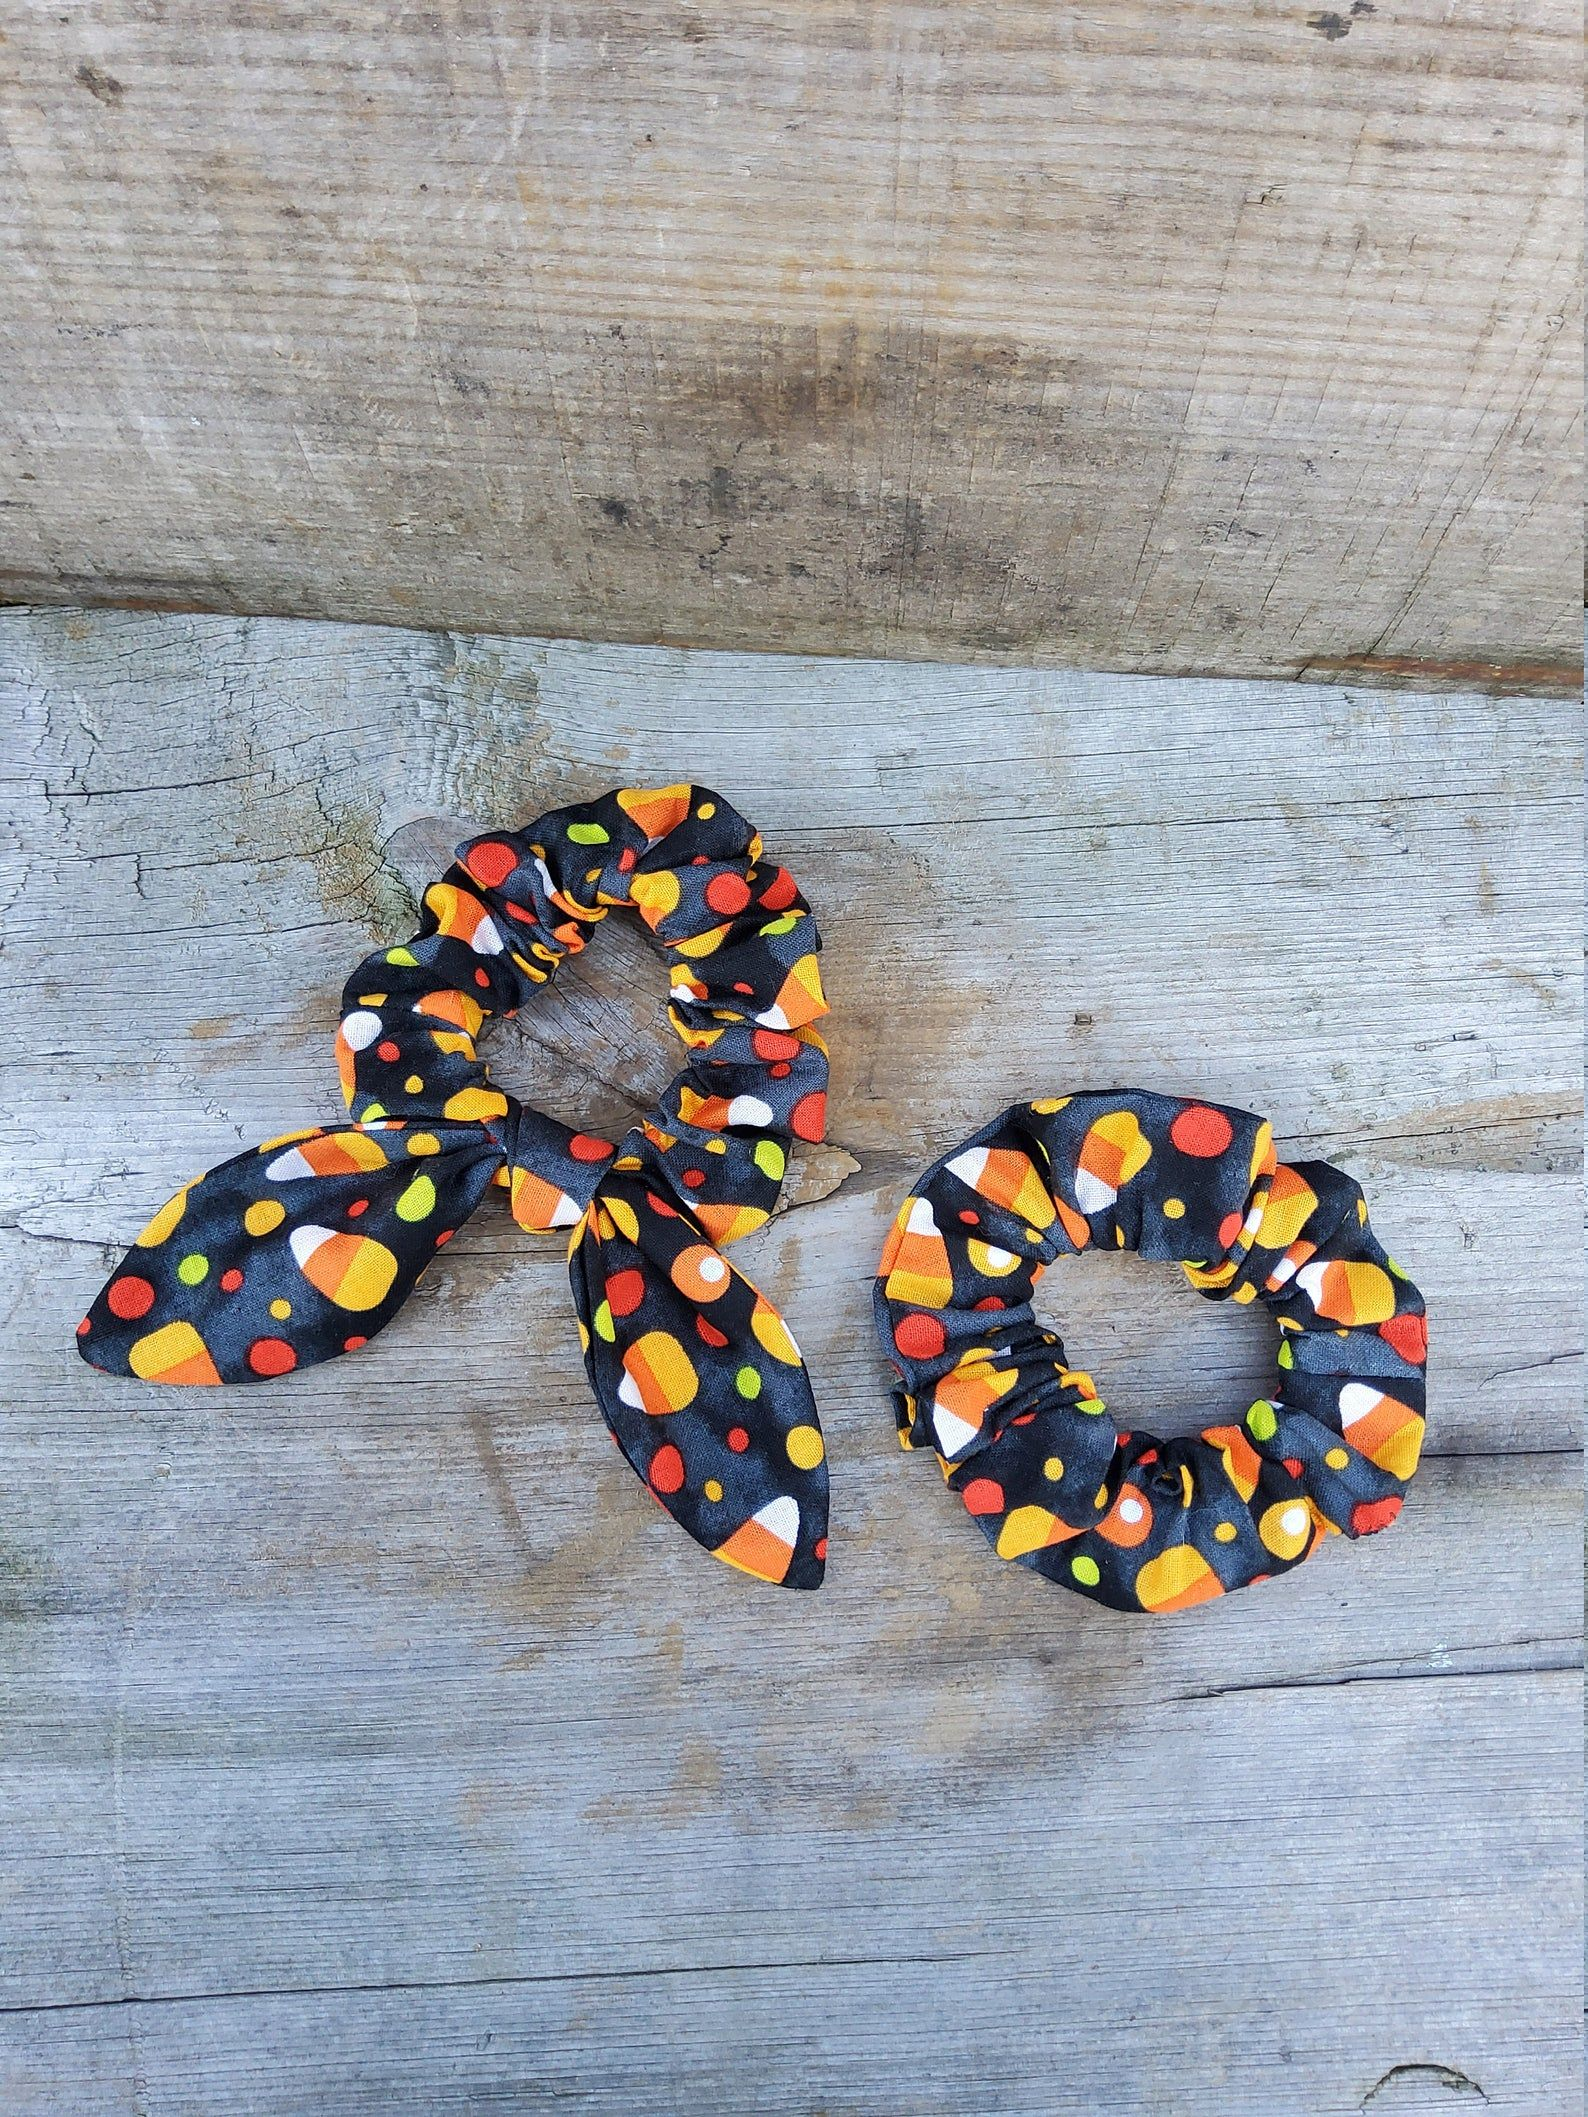 Candy Corn Hair Scrunchie Bow Scrunchies Hair Scrunchy Top Knot Hair Tie Gentle Hair Elastic Hair Accessory Handmade #hairscrunchie